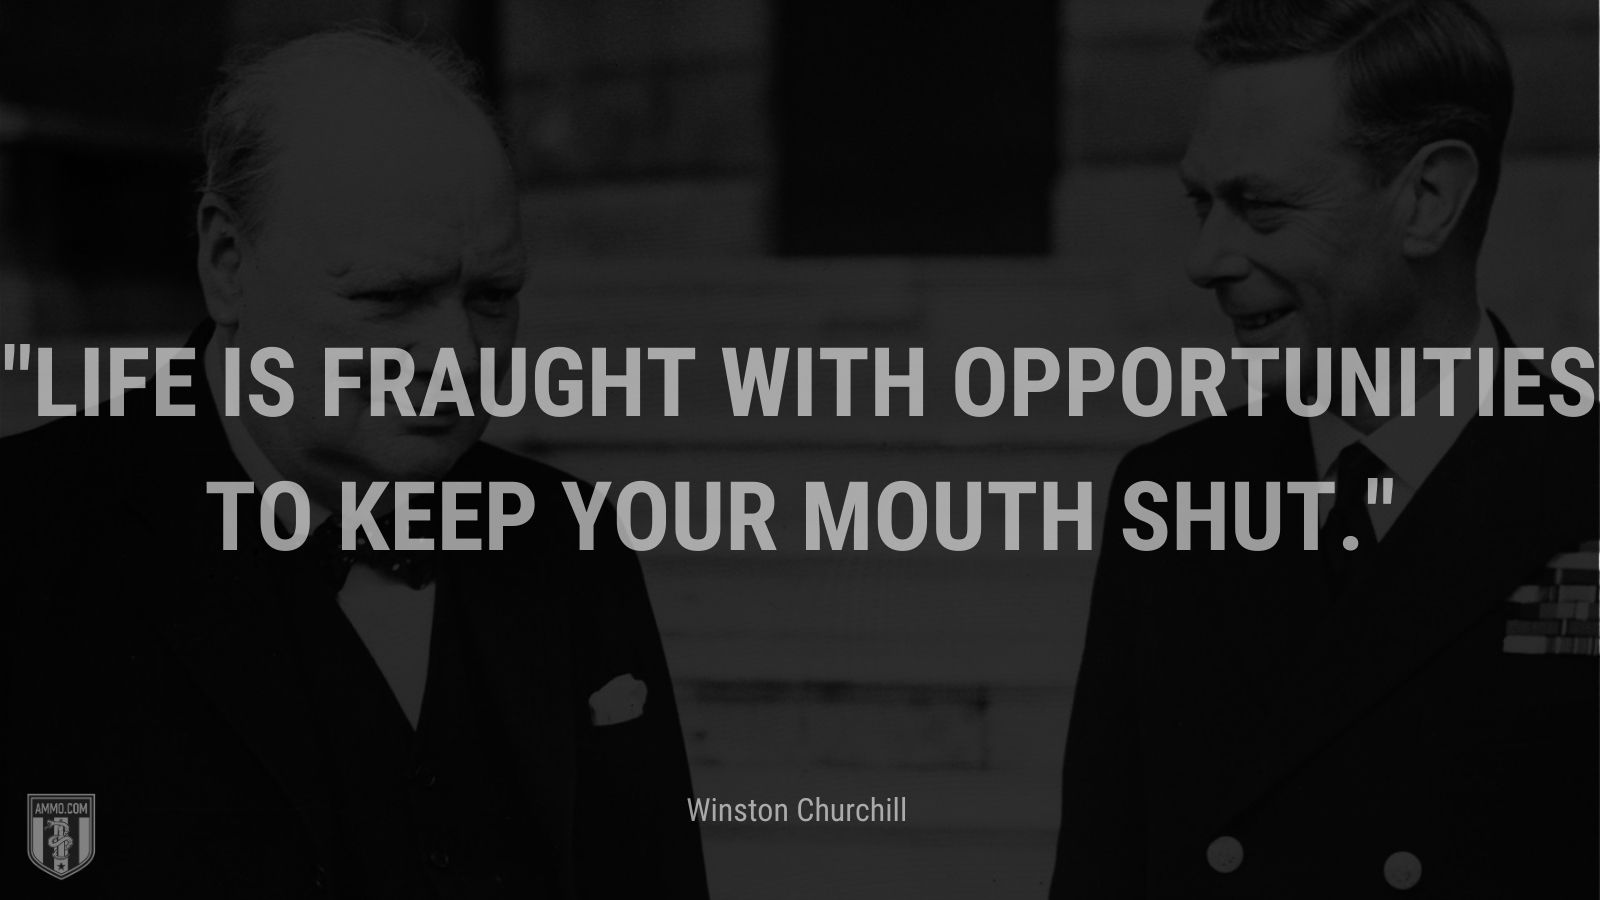 Life is fraught with opportunities to keep your mouth shut.